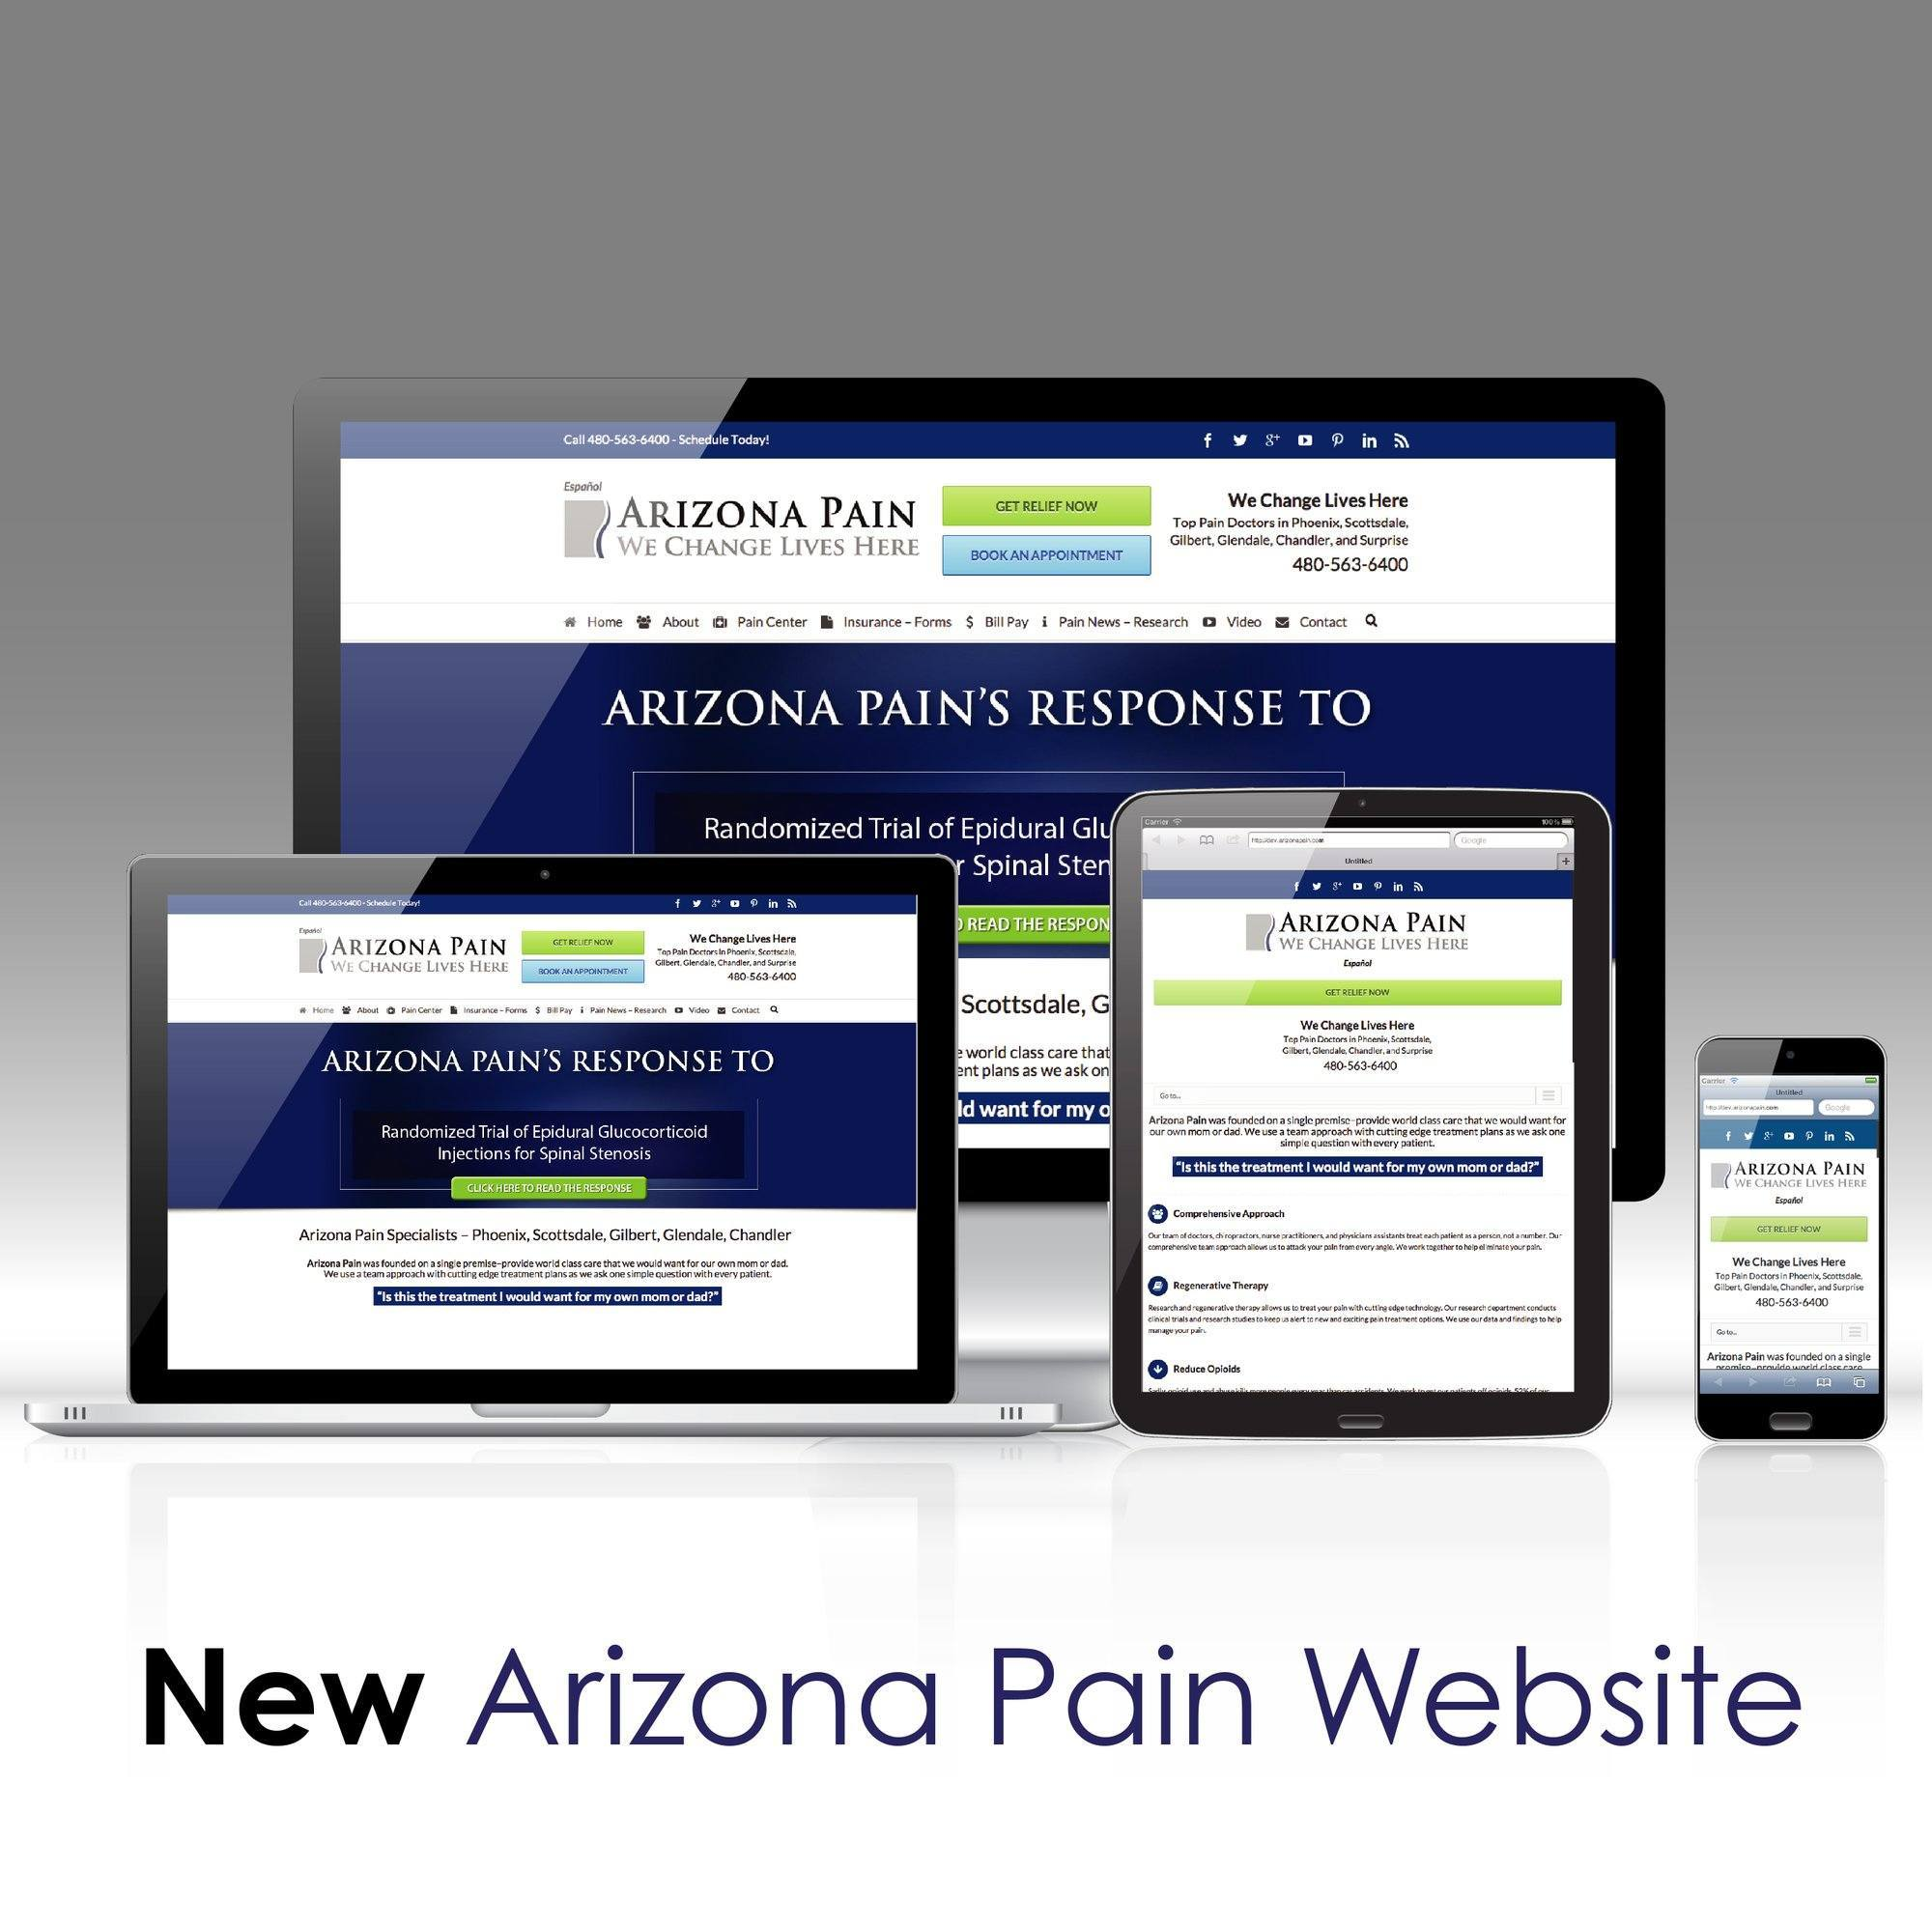 Arizona Pain website